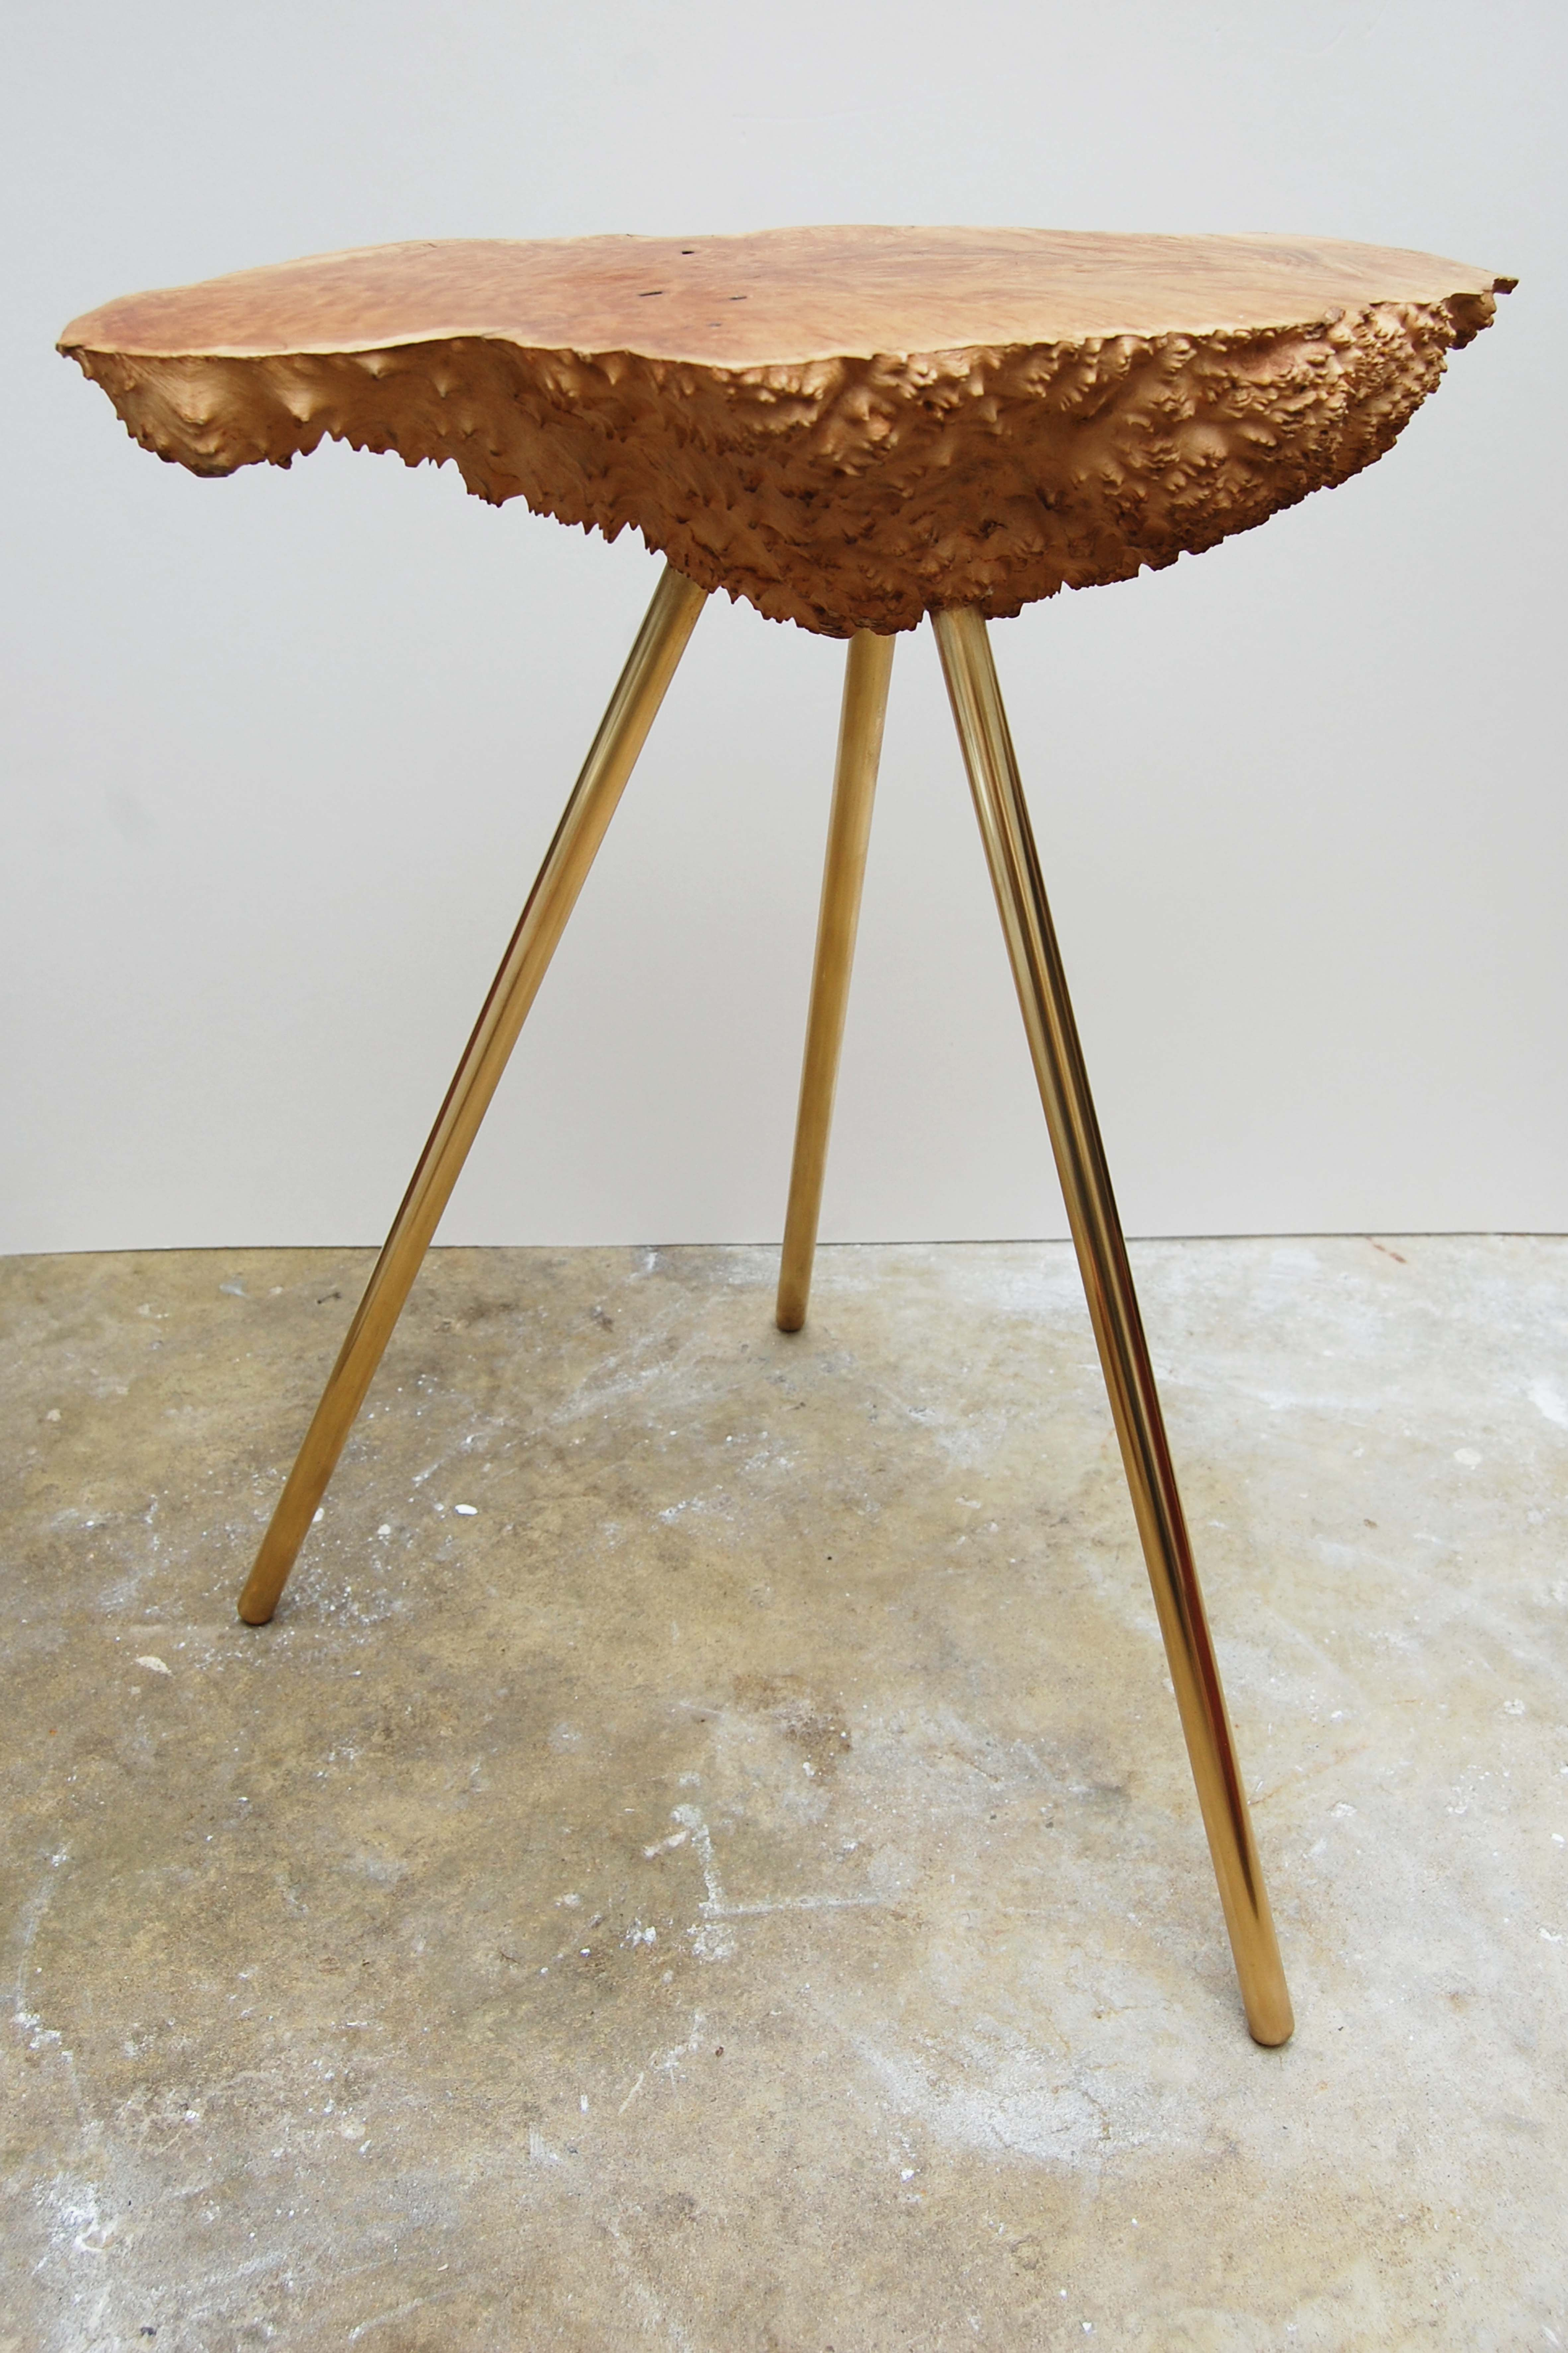 Piers saxby candy studio small burr wood table edward